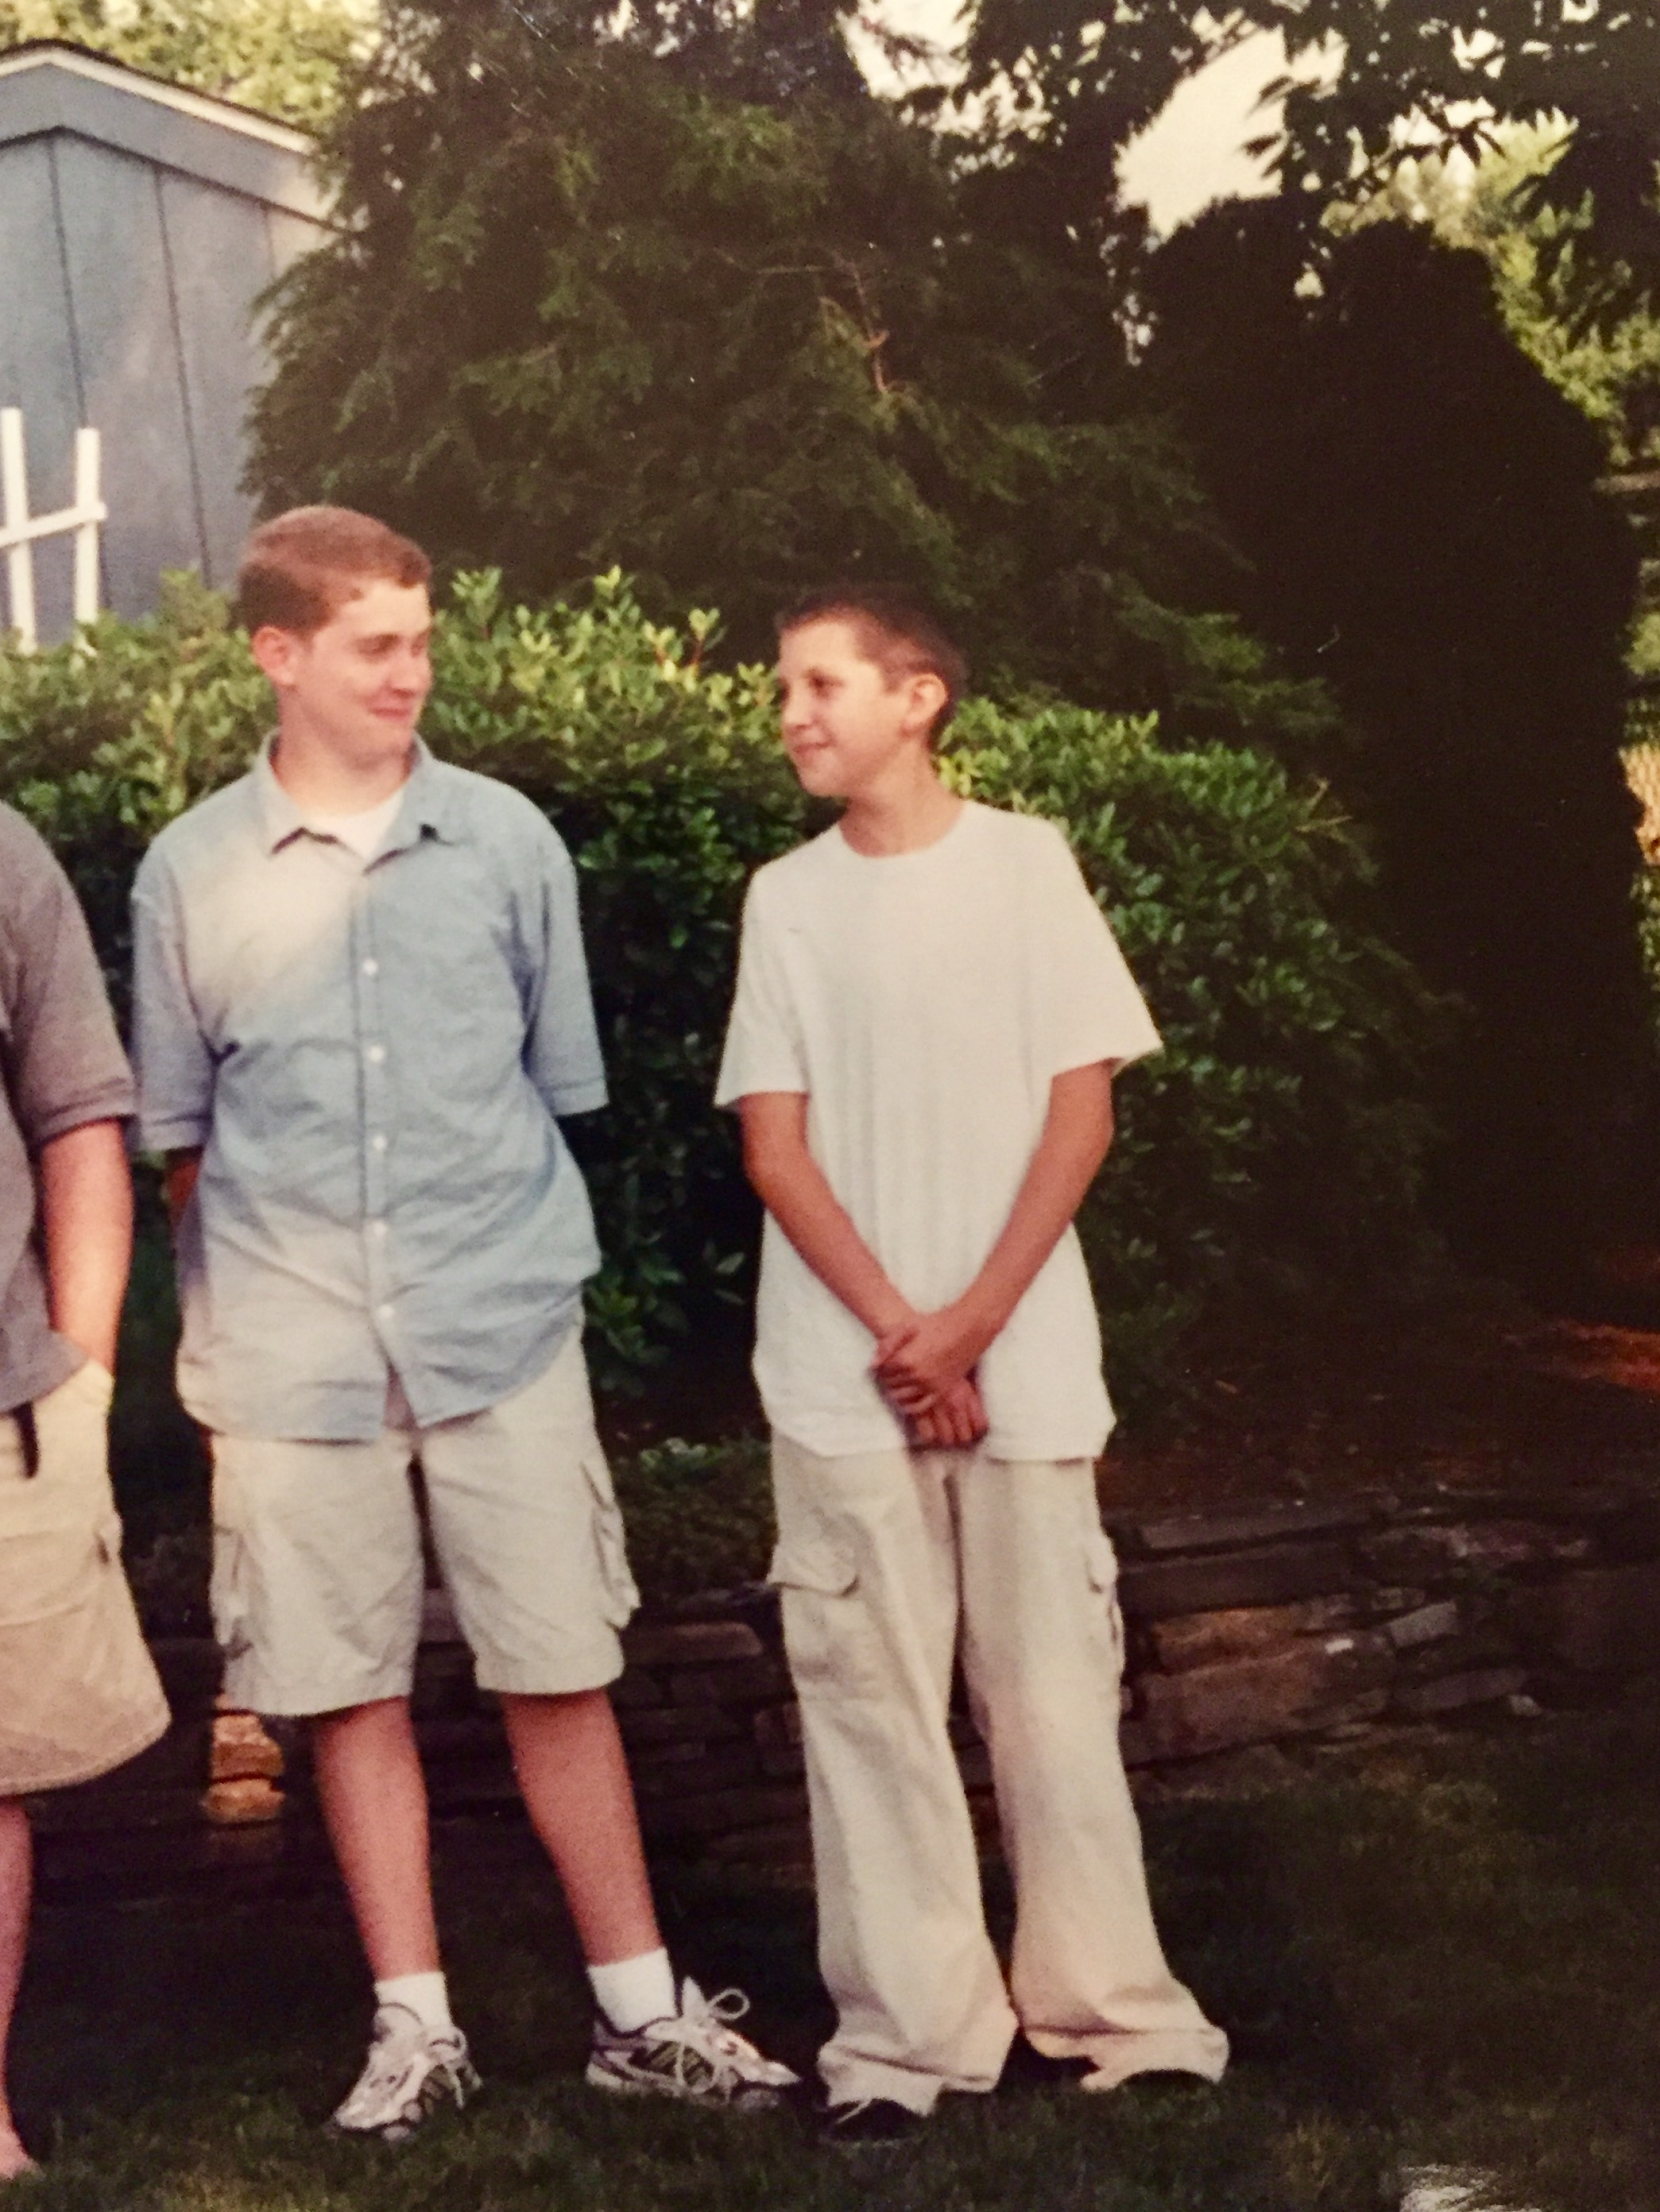 David Heisler as a child standing with his cousin, circa 1995, location unspecified | Photo courtesy of Mary Brace, St. George News